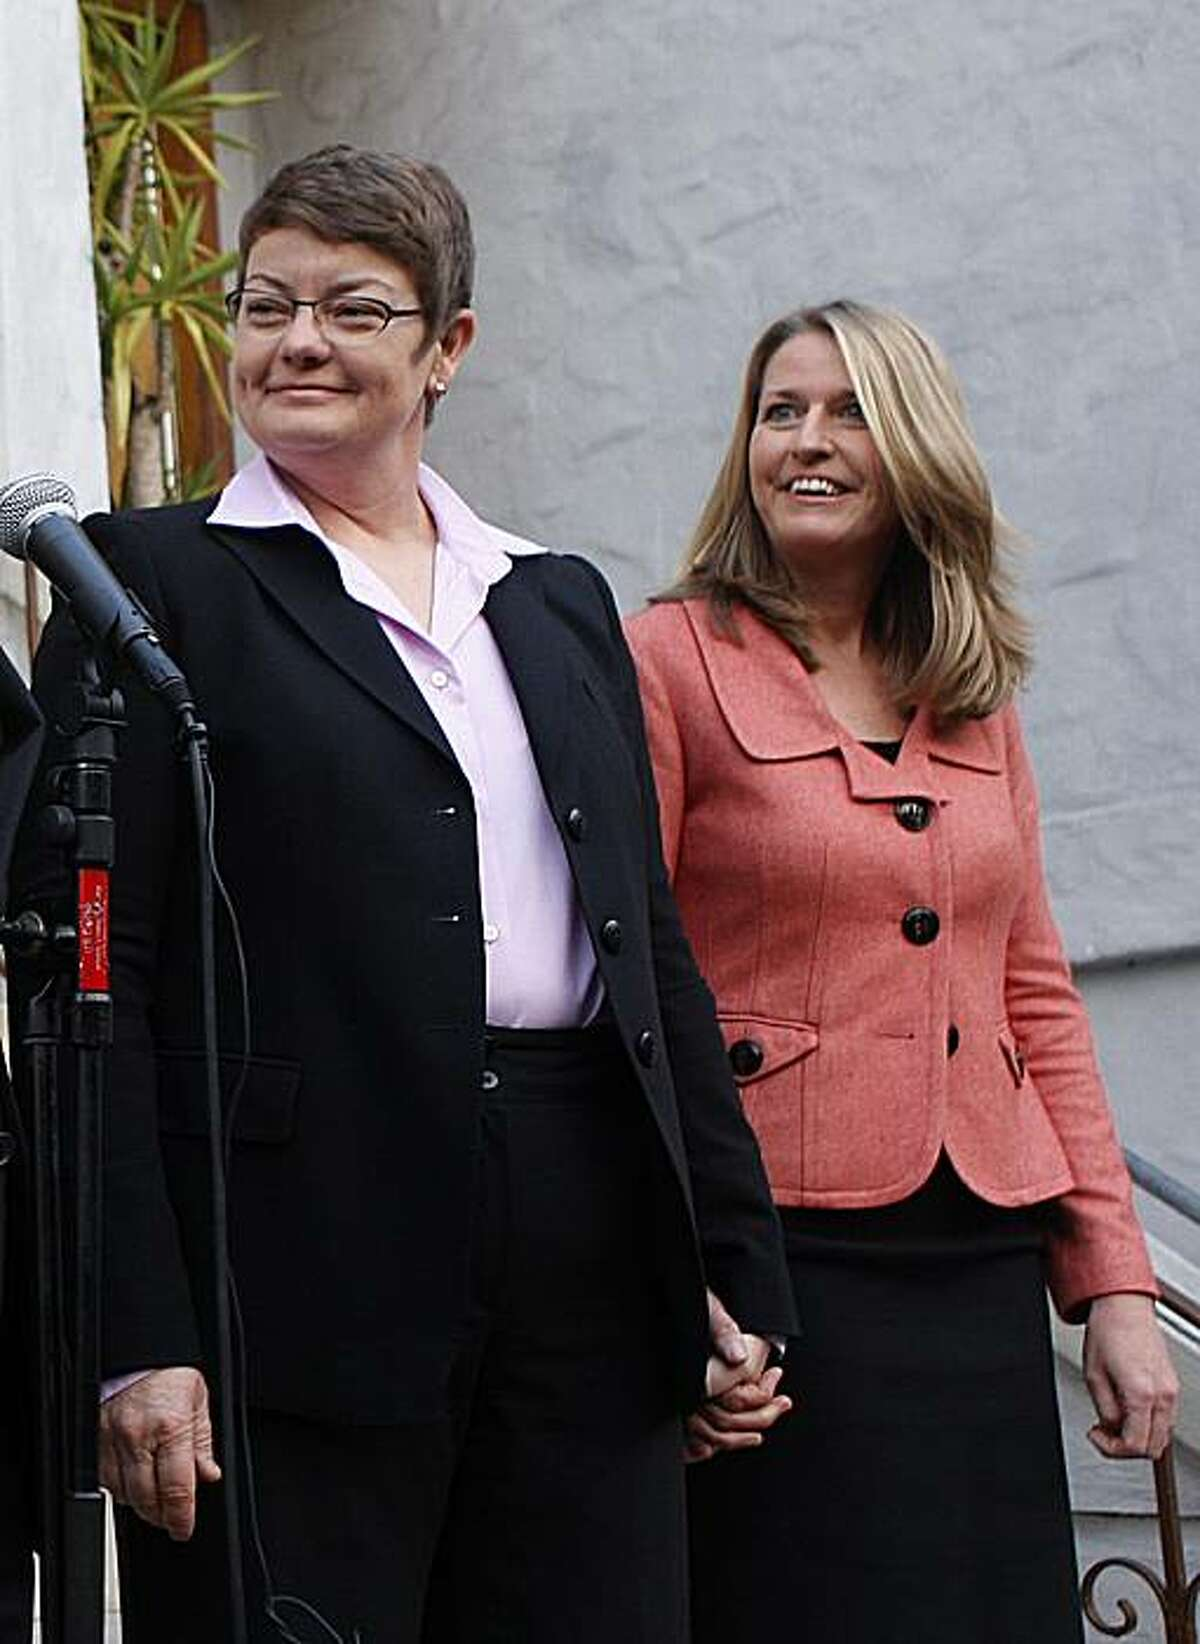 Kristin Perry (left) and Sandra Stier were denied the right to marry and are making a statement before the trial in San Francisco, Ca., on Monday, January 11, 2010.